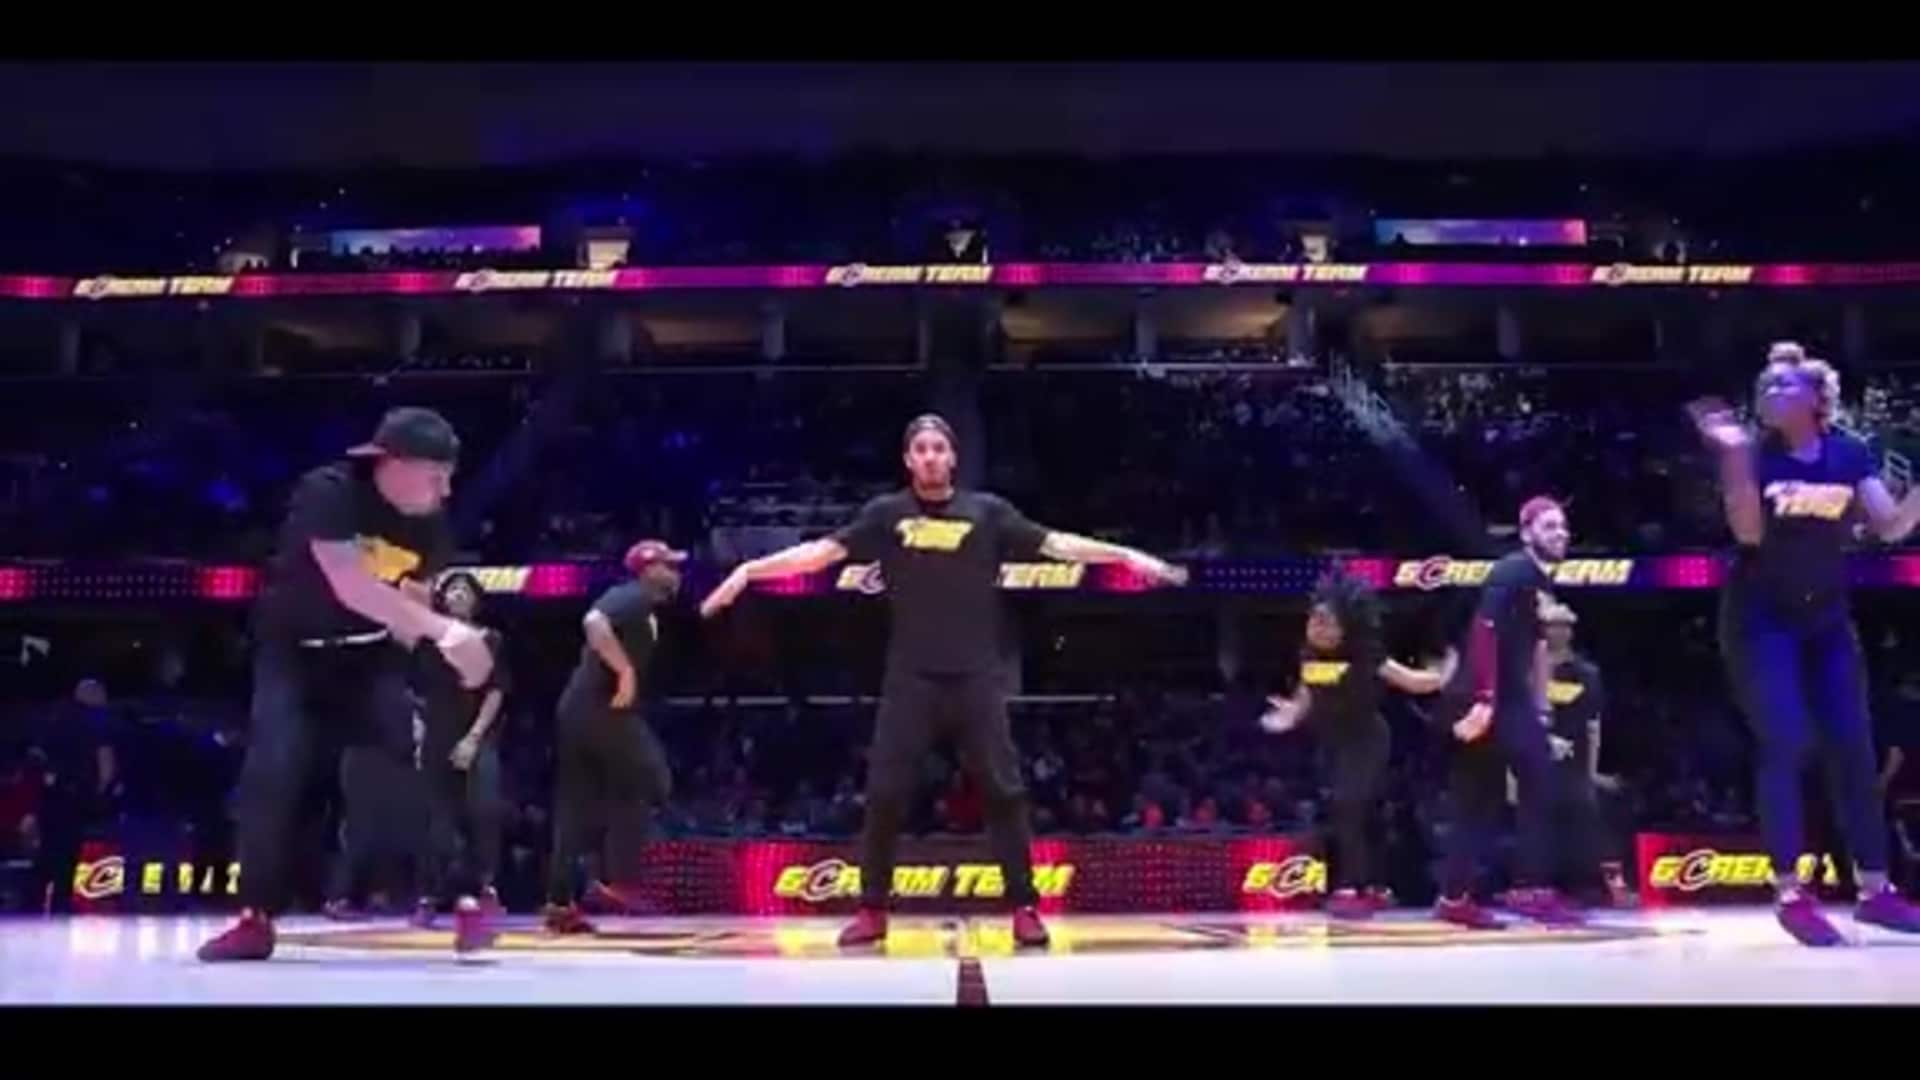 Cavs Scream Team Performs a Tribute Mix on MLK Day